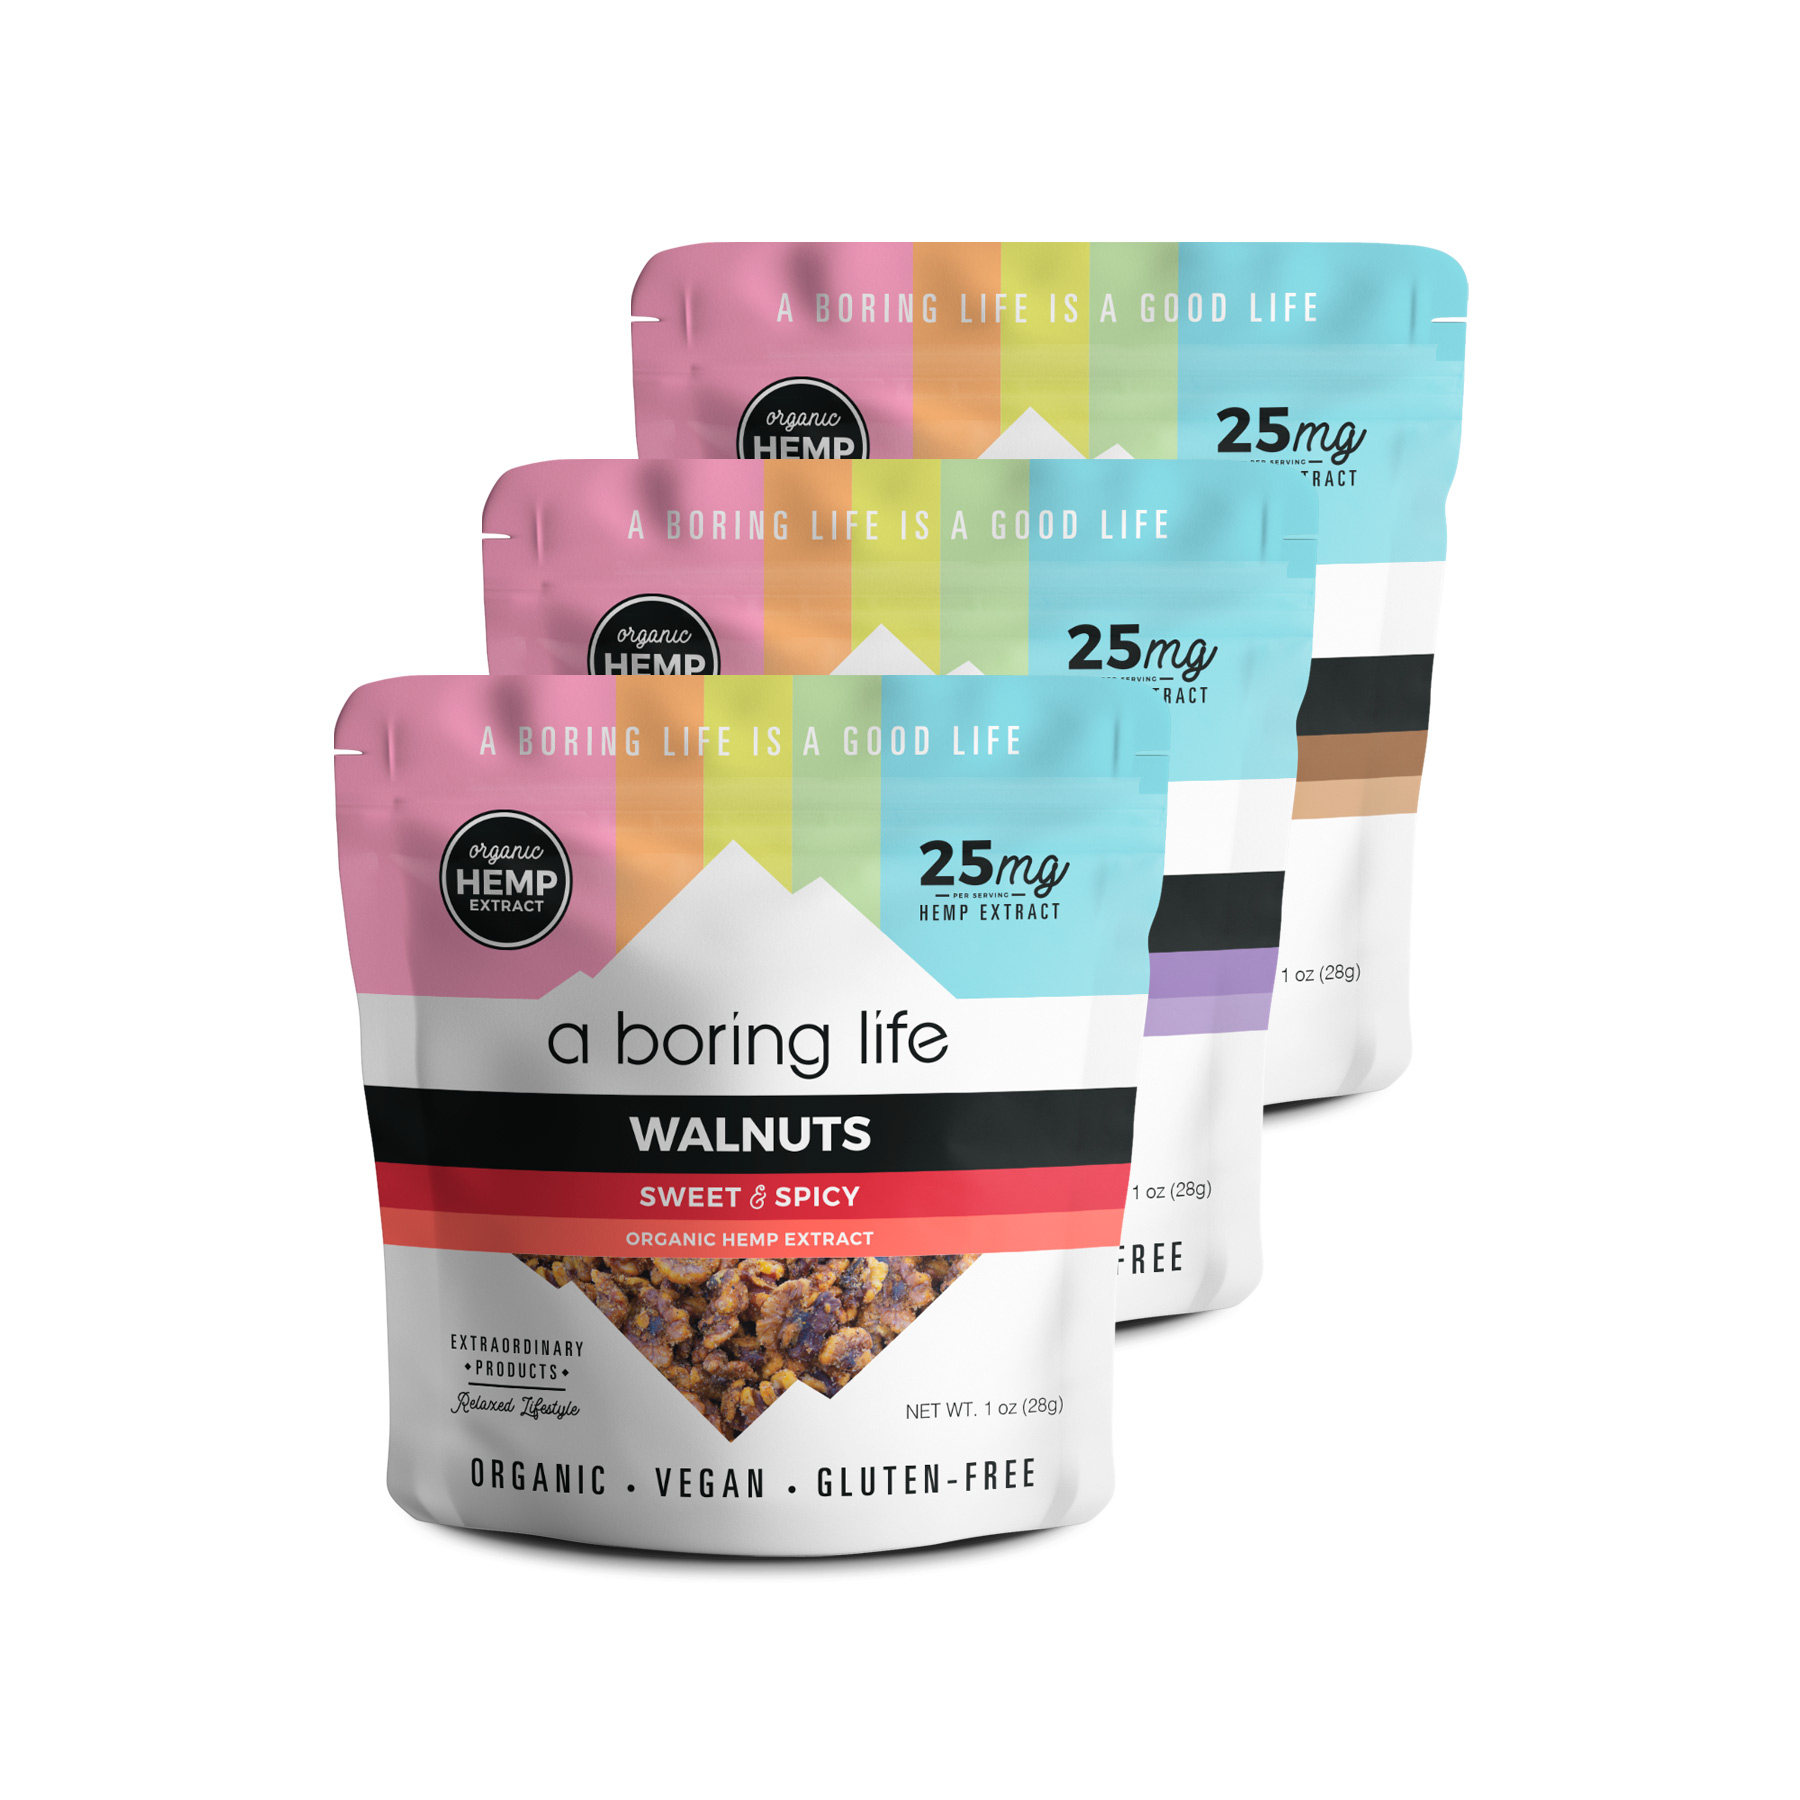 hemp extract cbd variety pack snacks a boring life - Variety Sampler – All Three Flavors of Nuts, Pack of 3